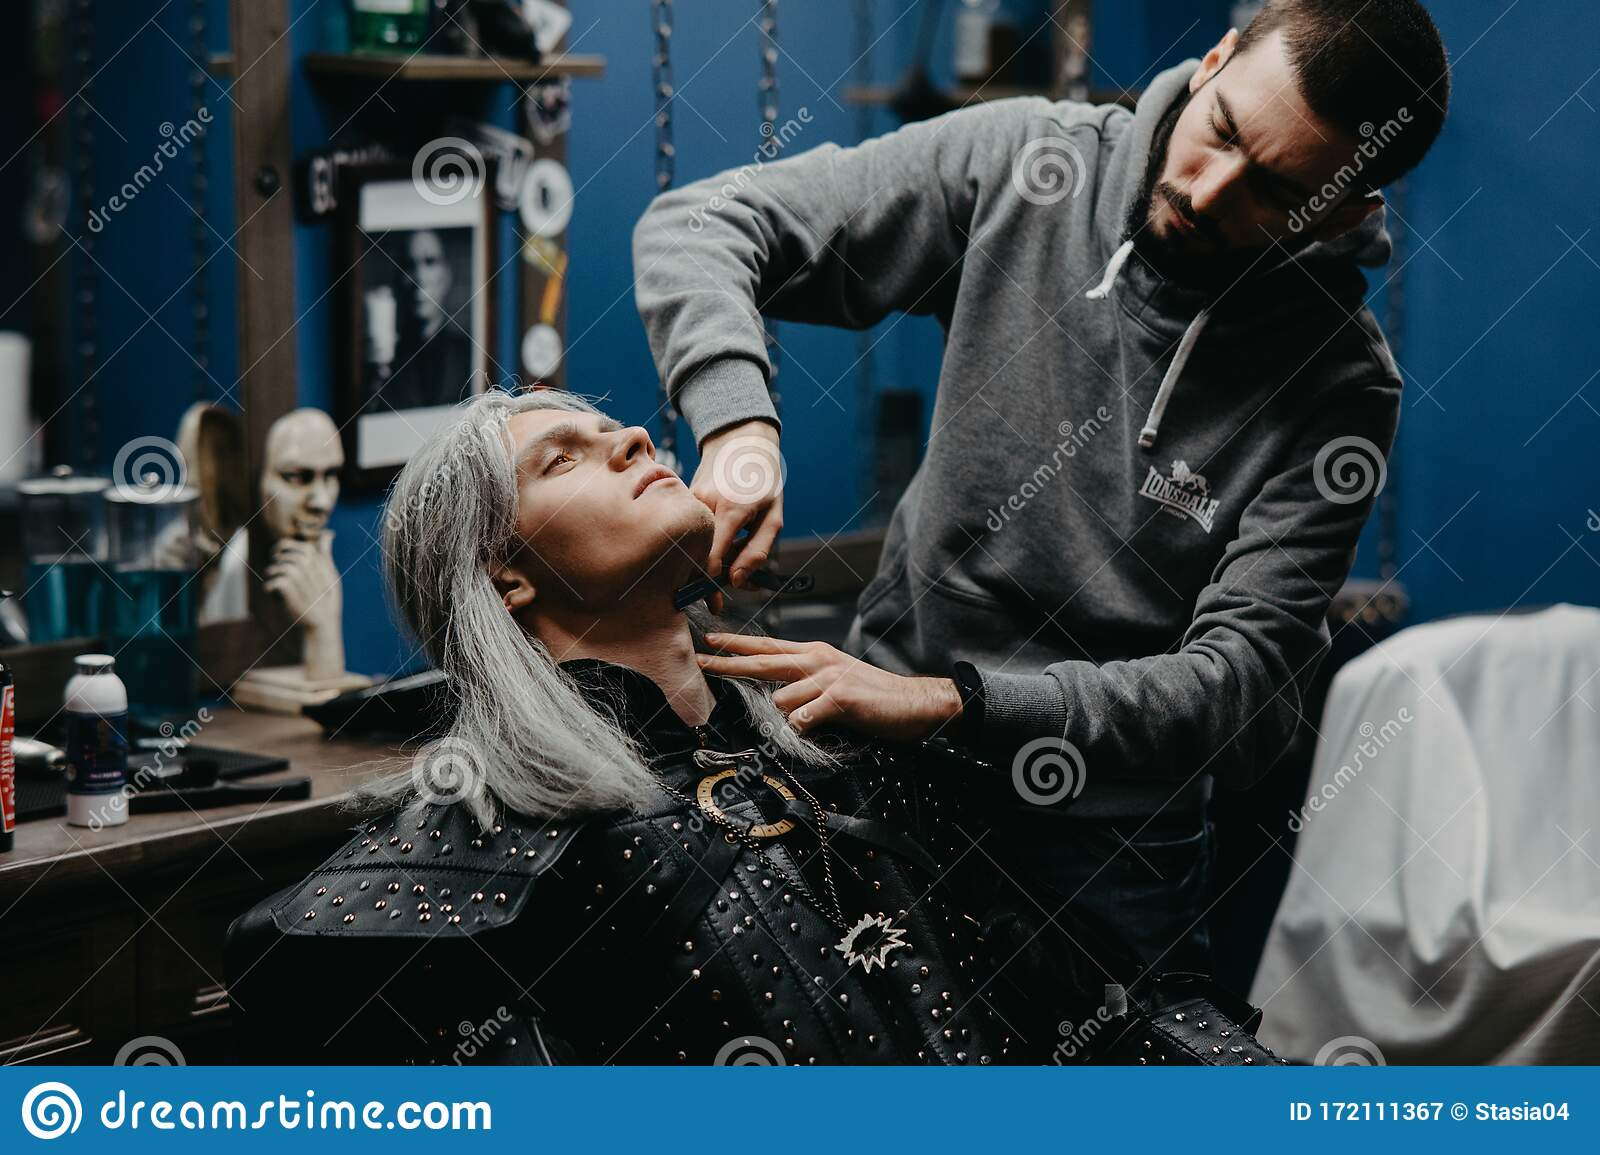 Cosplayer In Image Of A Character Geralt Of Rivia From The Game Or Series The Witcher Makes Hair Styling At Barbershop Editorial Photography Image Of Adult Hairdresser 172111367